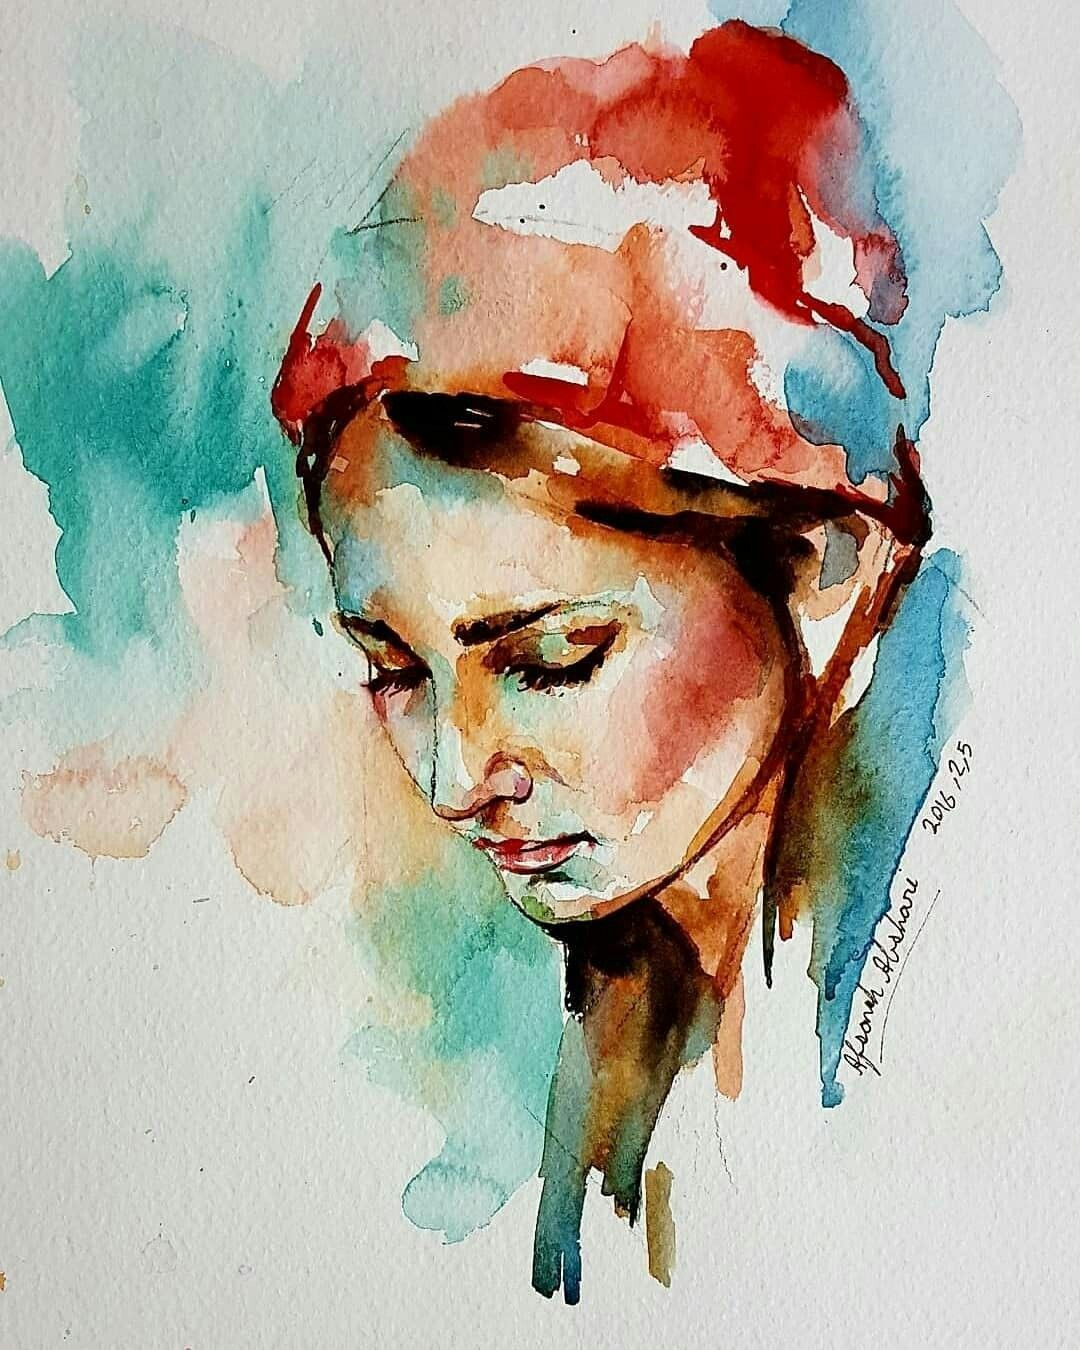 Wasserfarbenkunst With Images Watercolor Portrait Painting